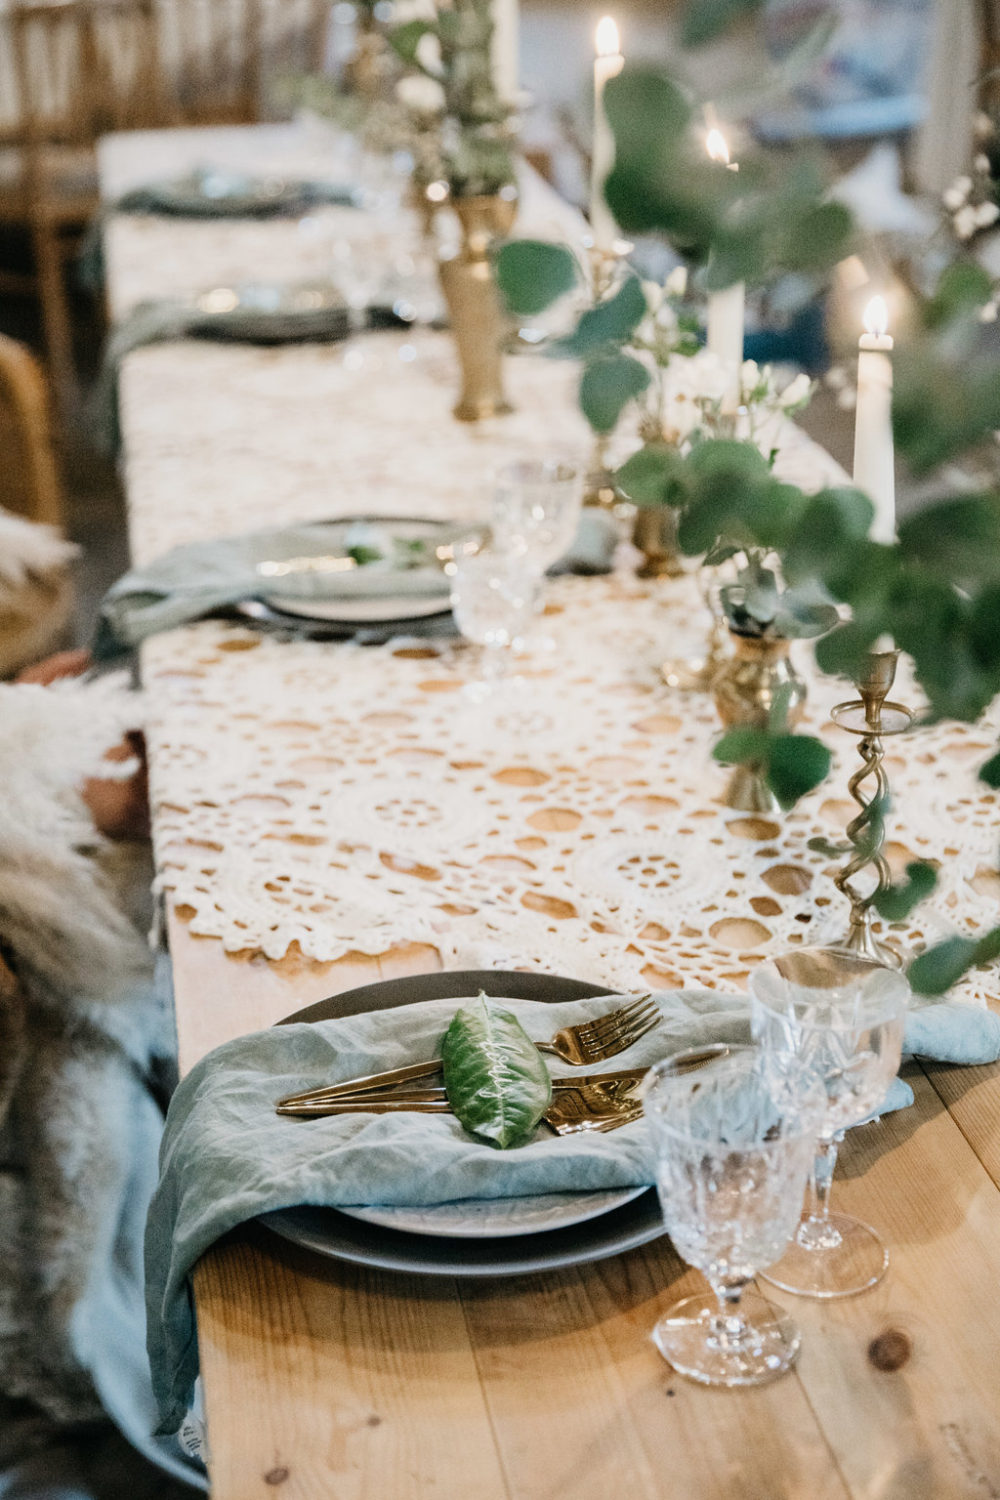 Top tablescape macrame brassware and glass